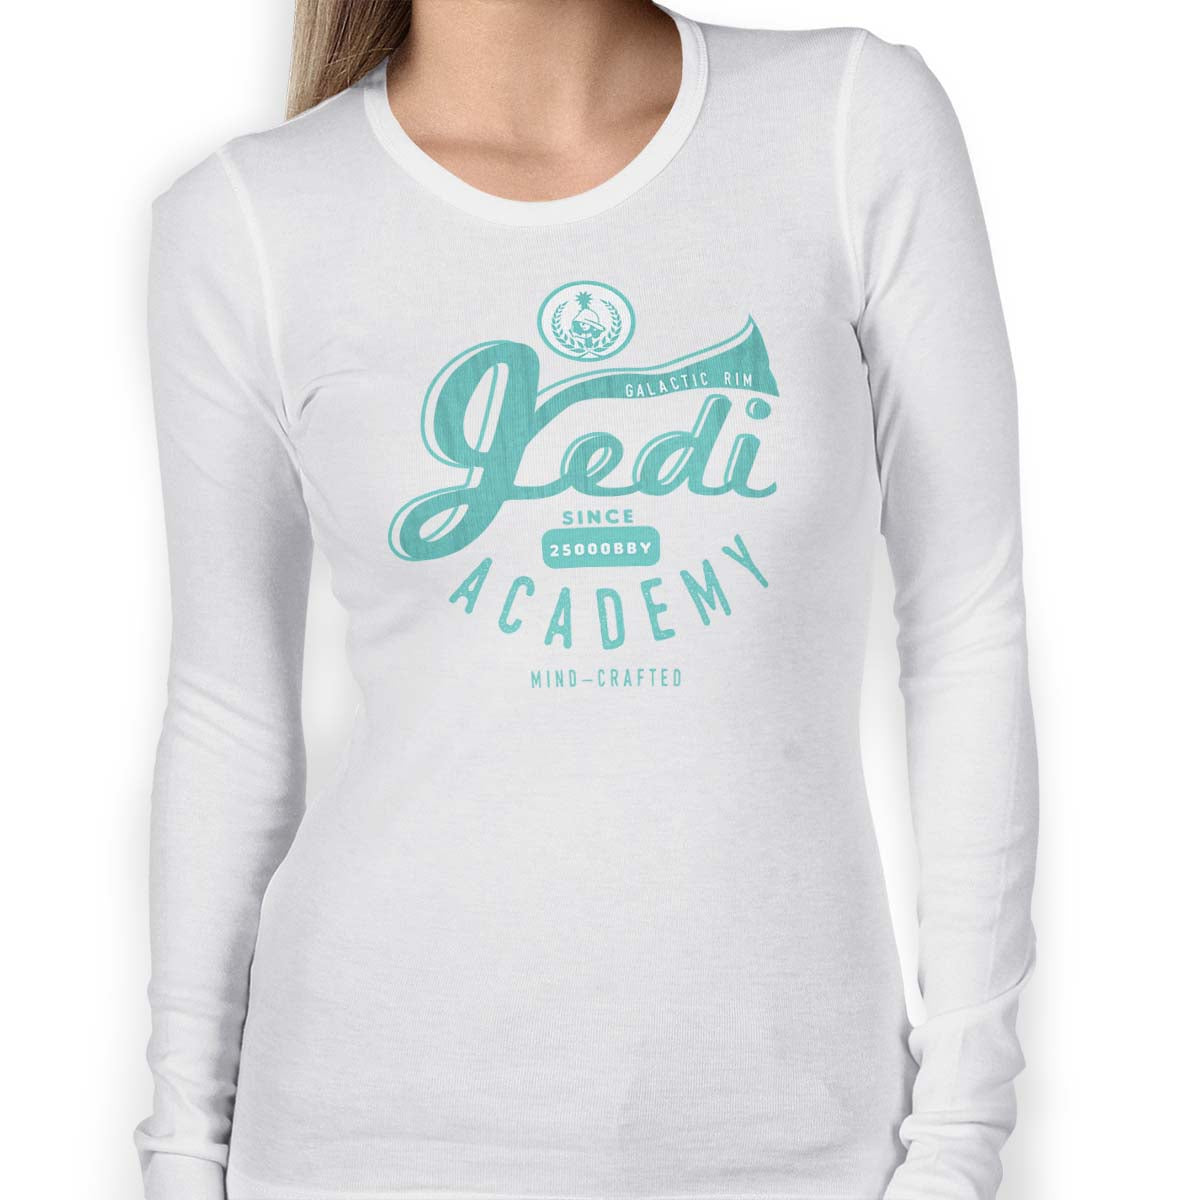 star wars jedi academy long sleeve white